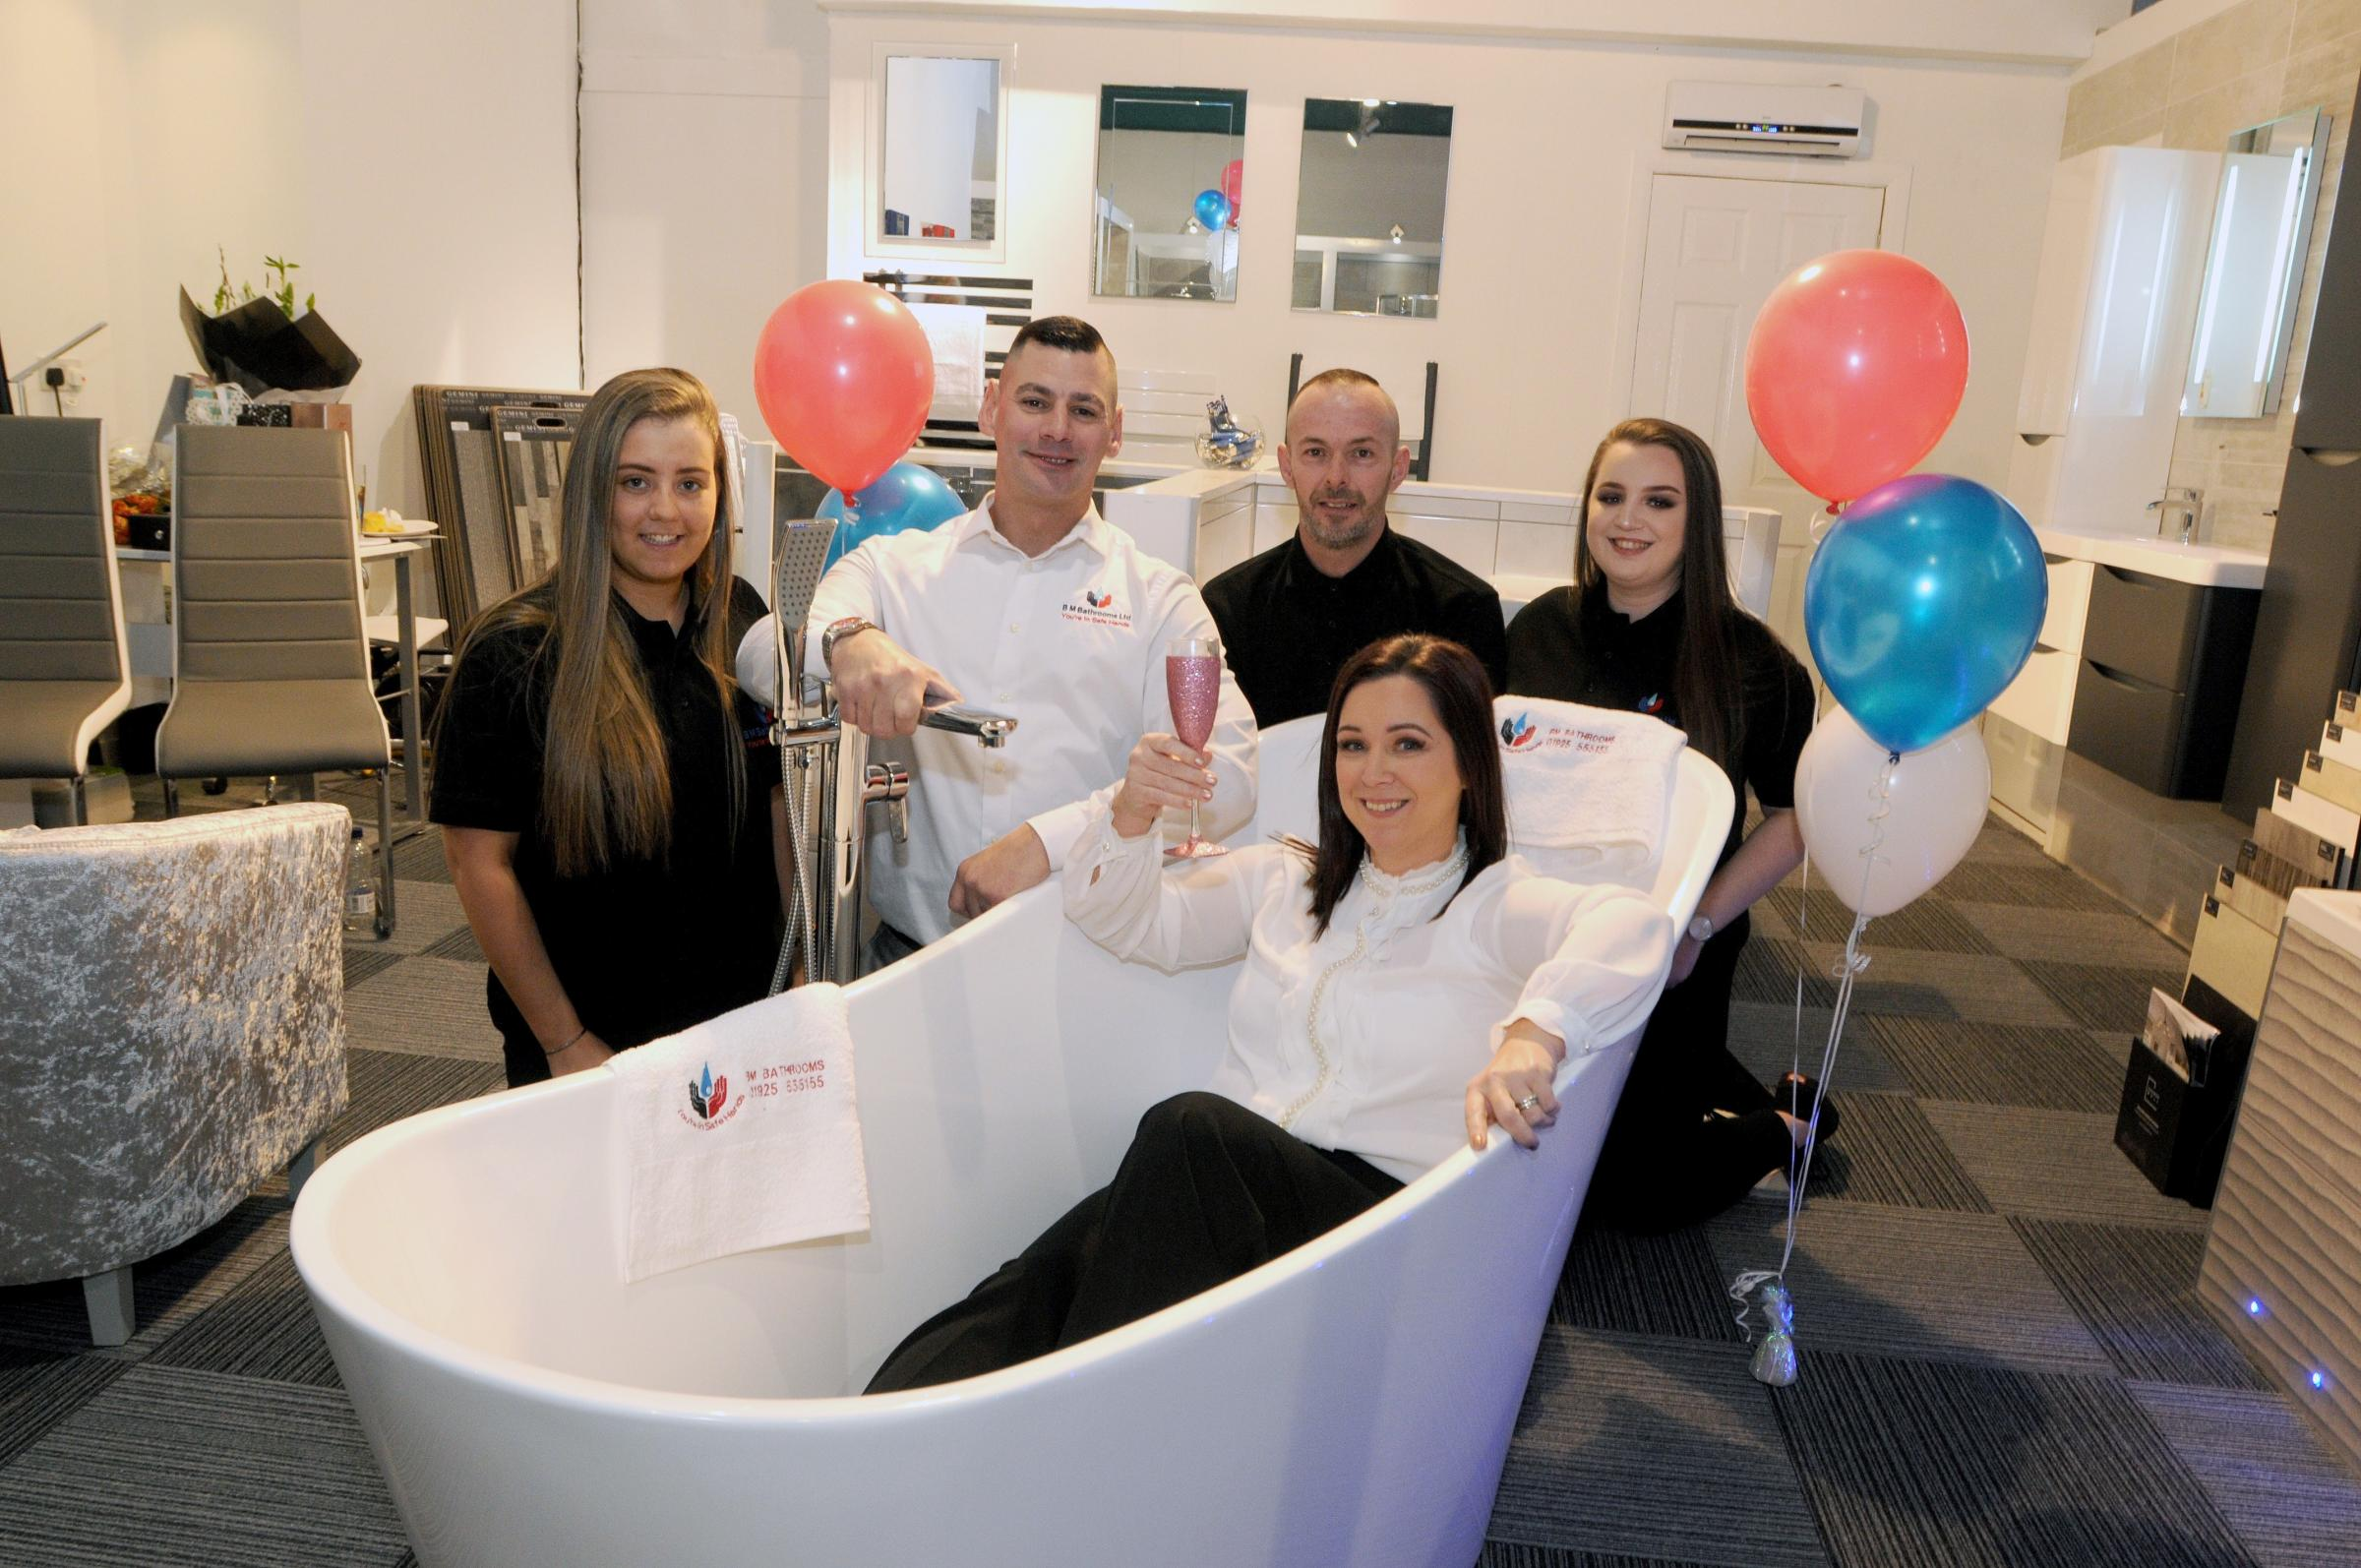 Left, Rachel Snape, Brian Marshall, Paul Bullen, Nicola Marshal and Ellie Butterworth at the opening of BM Bathrooms